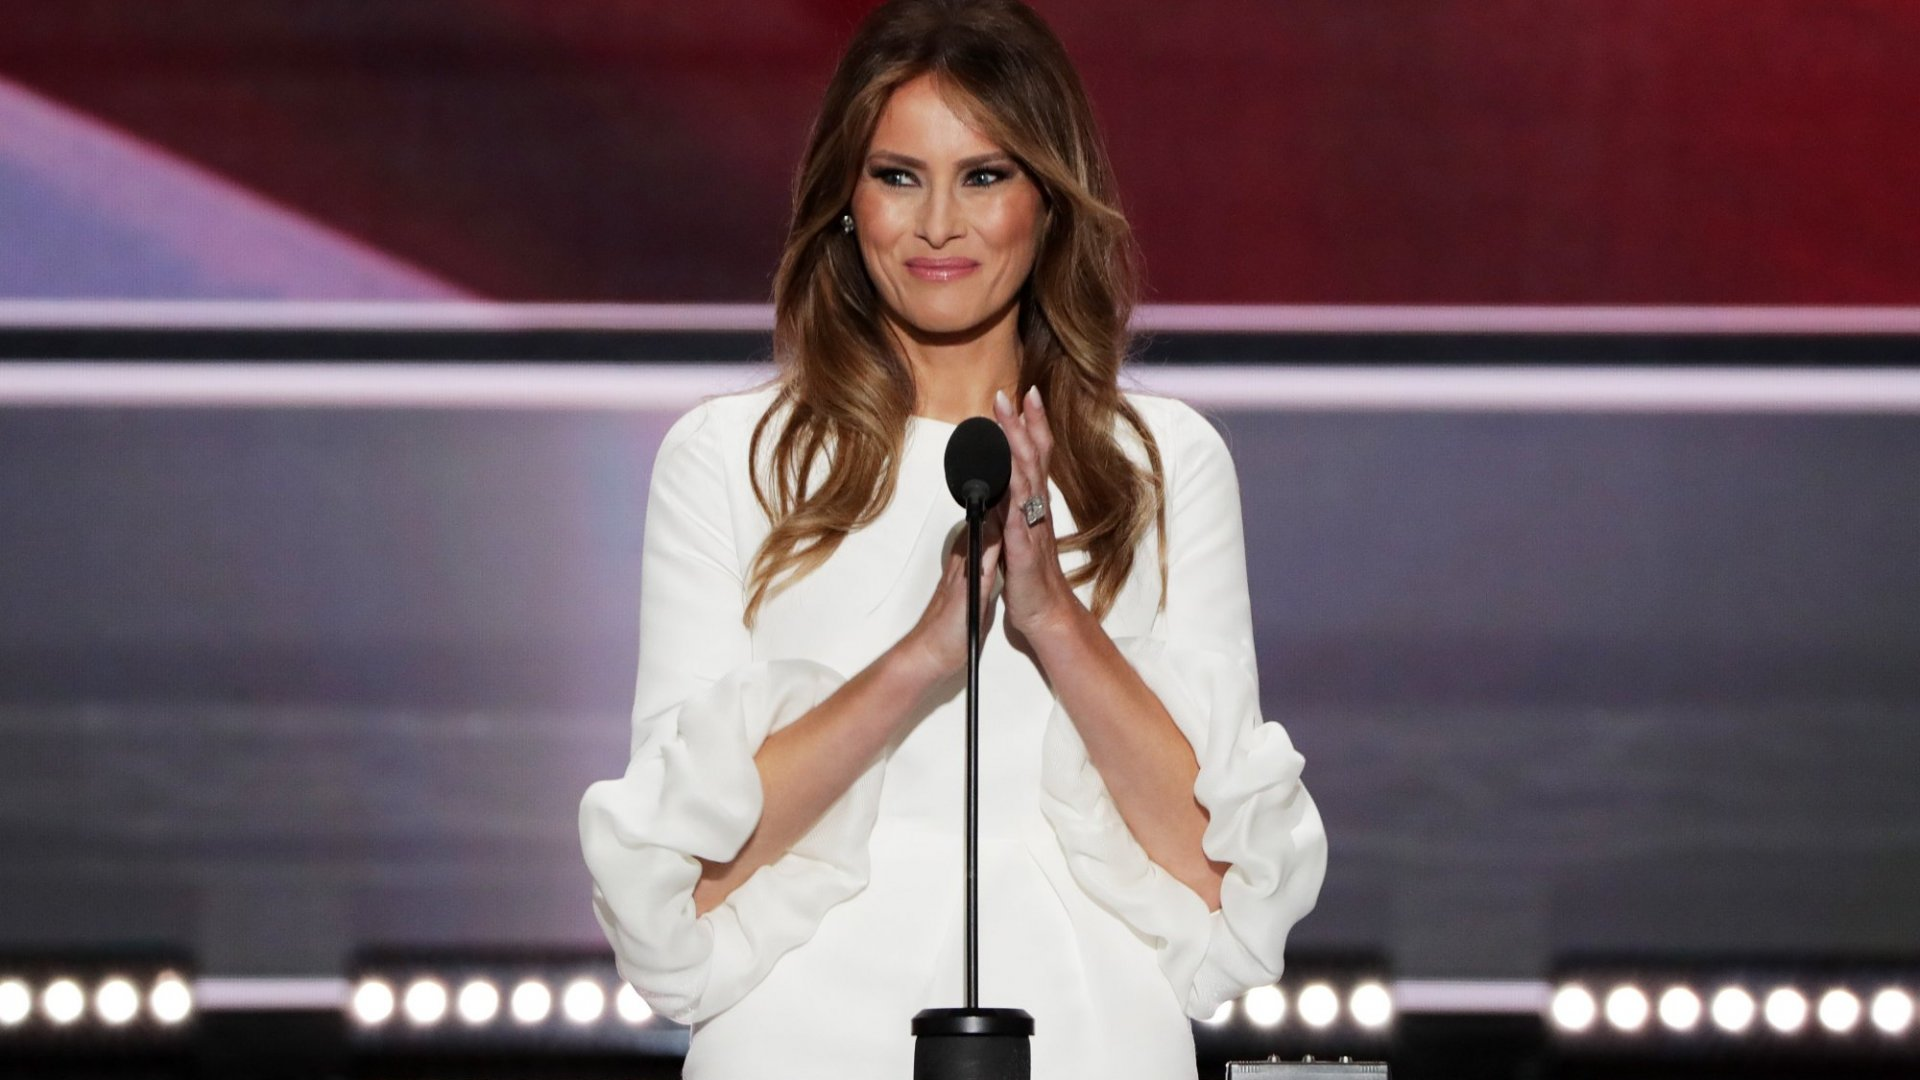 9 Brilliant Apologies Melania Trump Could 'Steal From' (If She Ever Needs To)